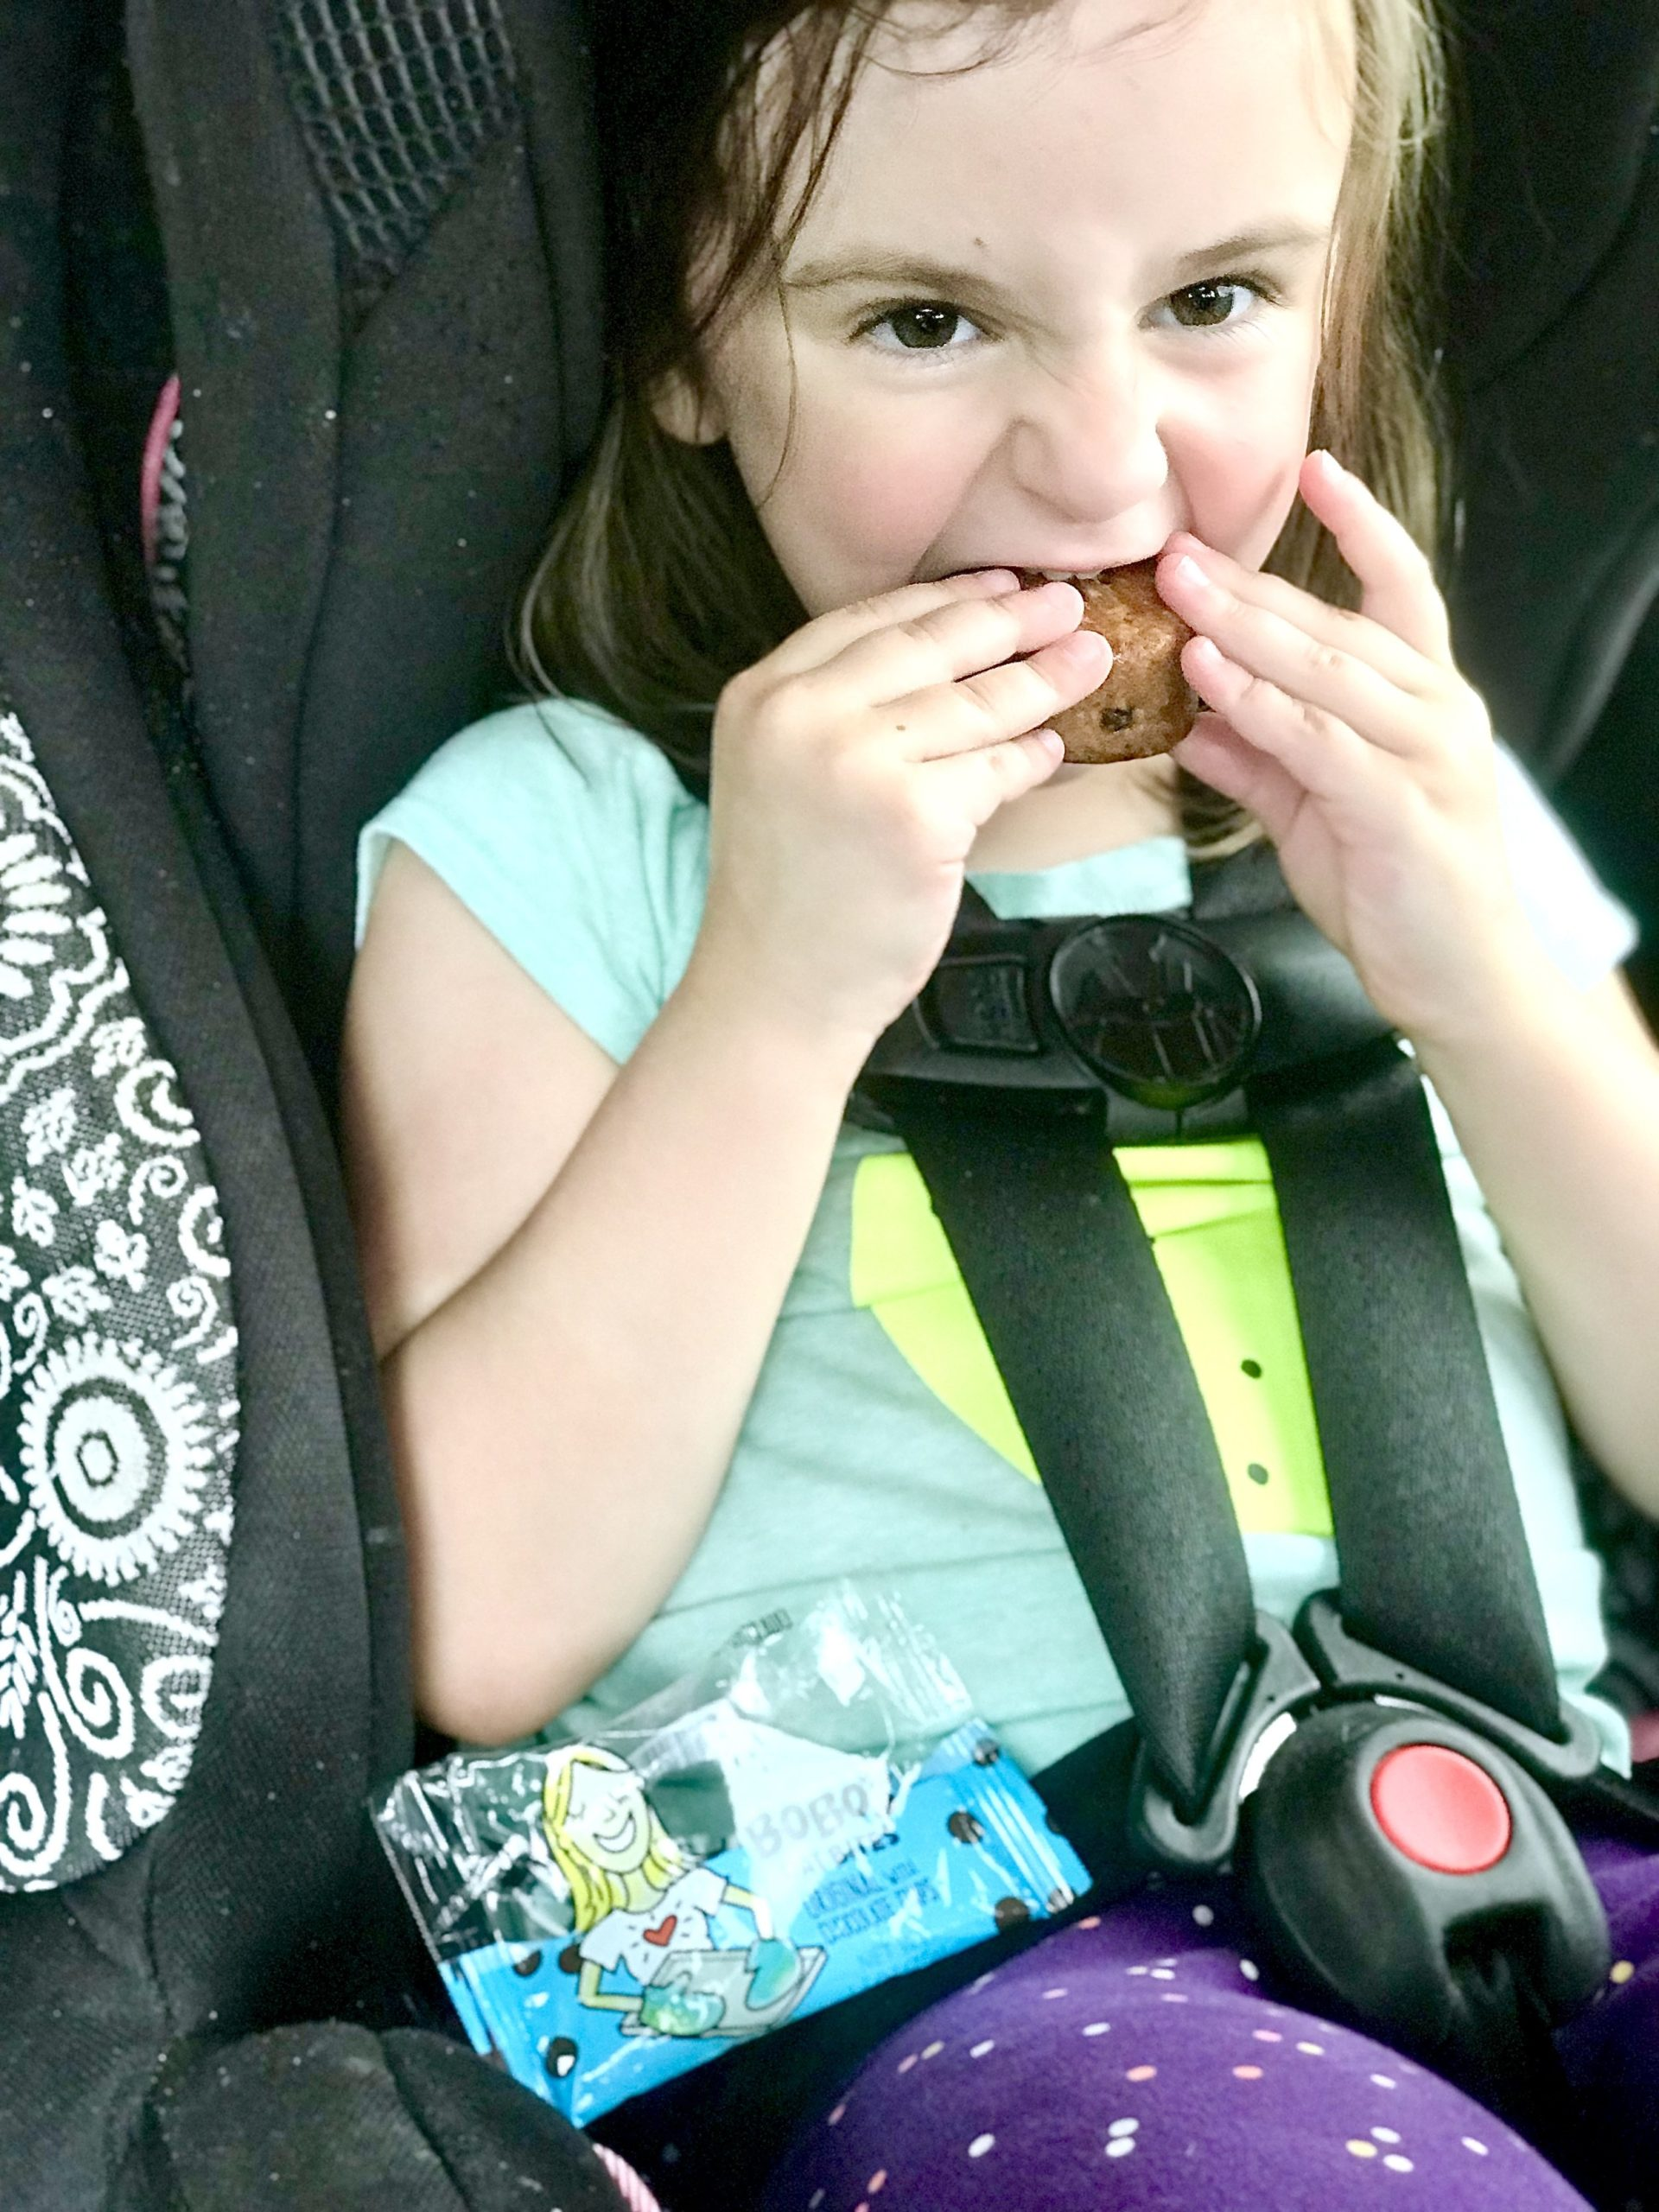 My Ultimate Snack Plan for Road-tripping with Kids